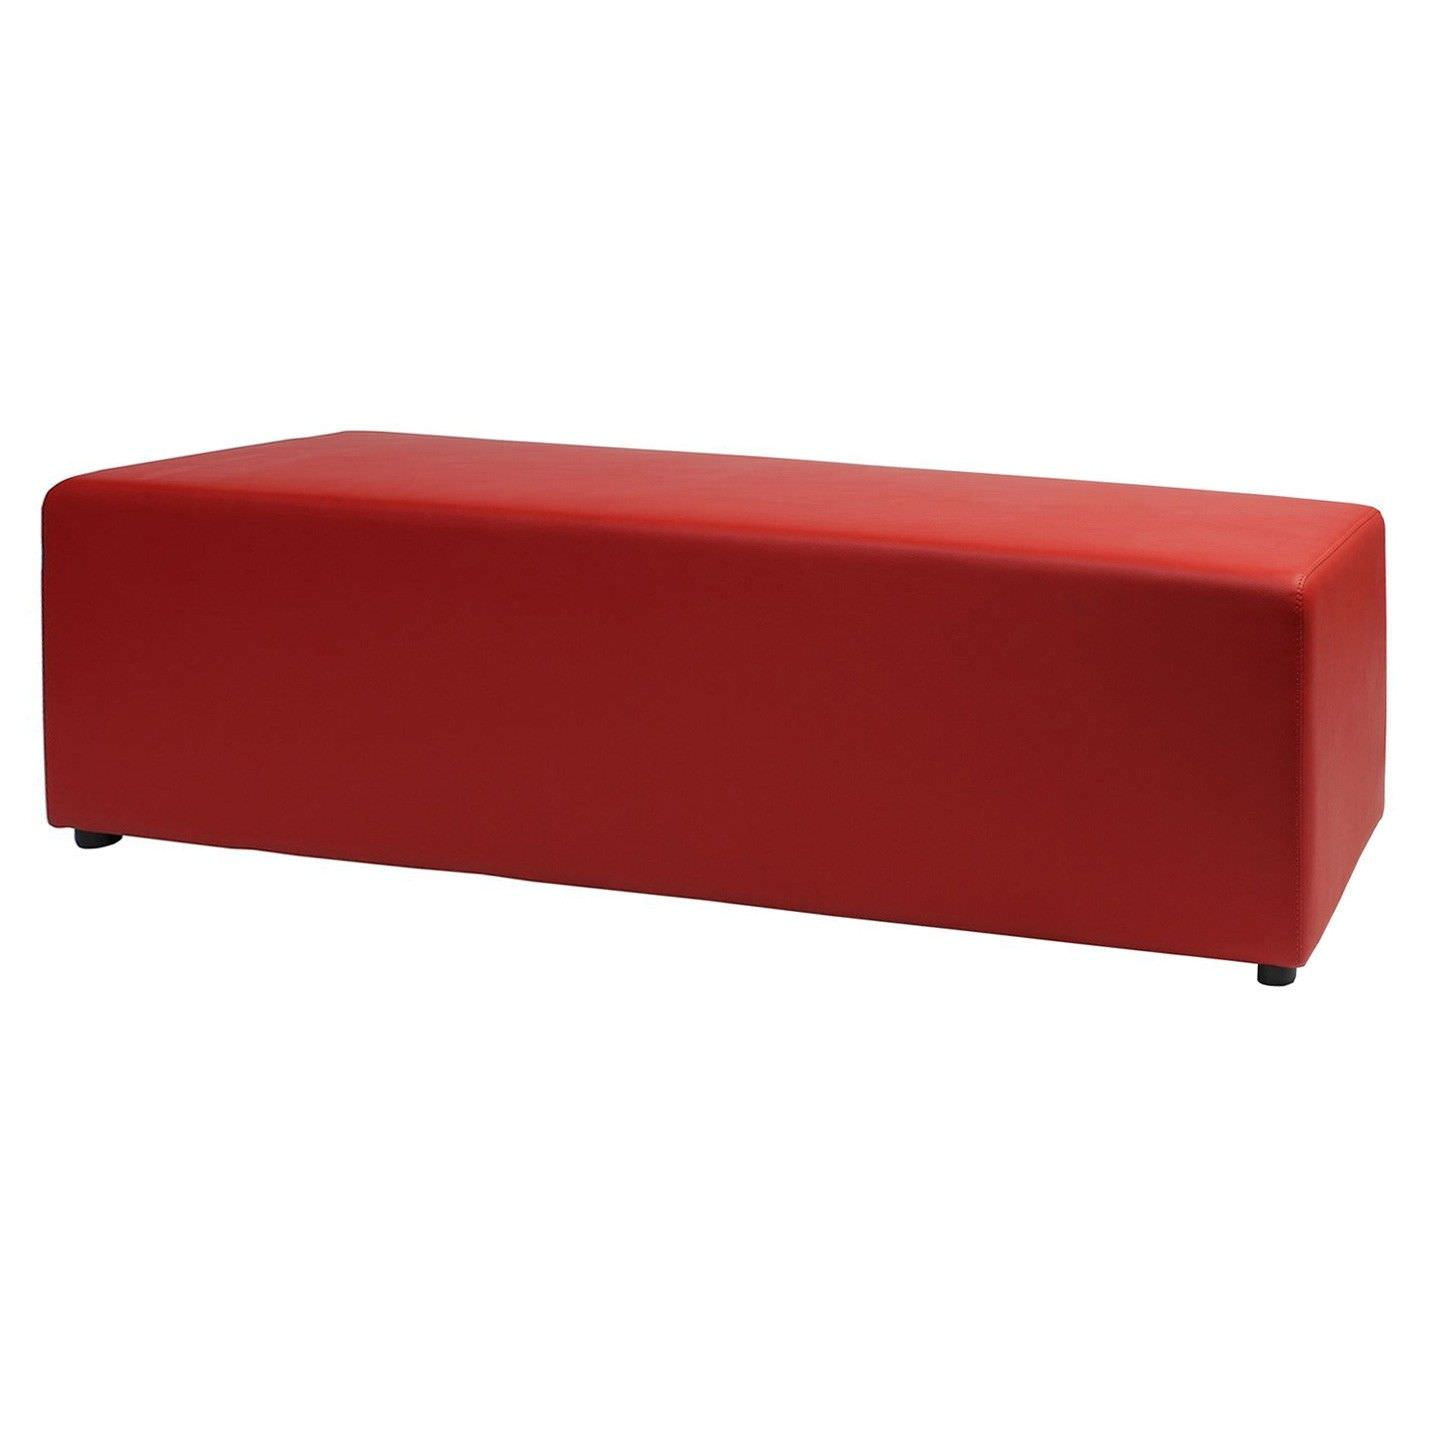 Berlin Commercial Grade 150cm Bench - Red